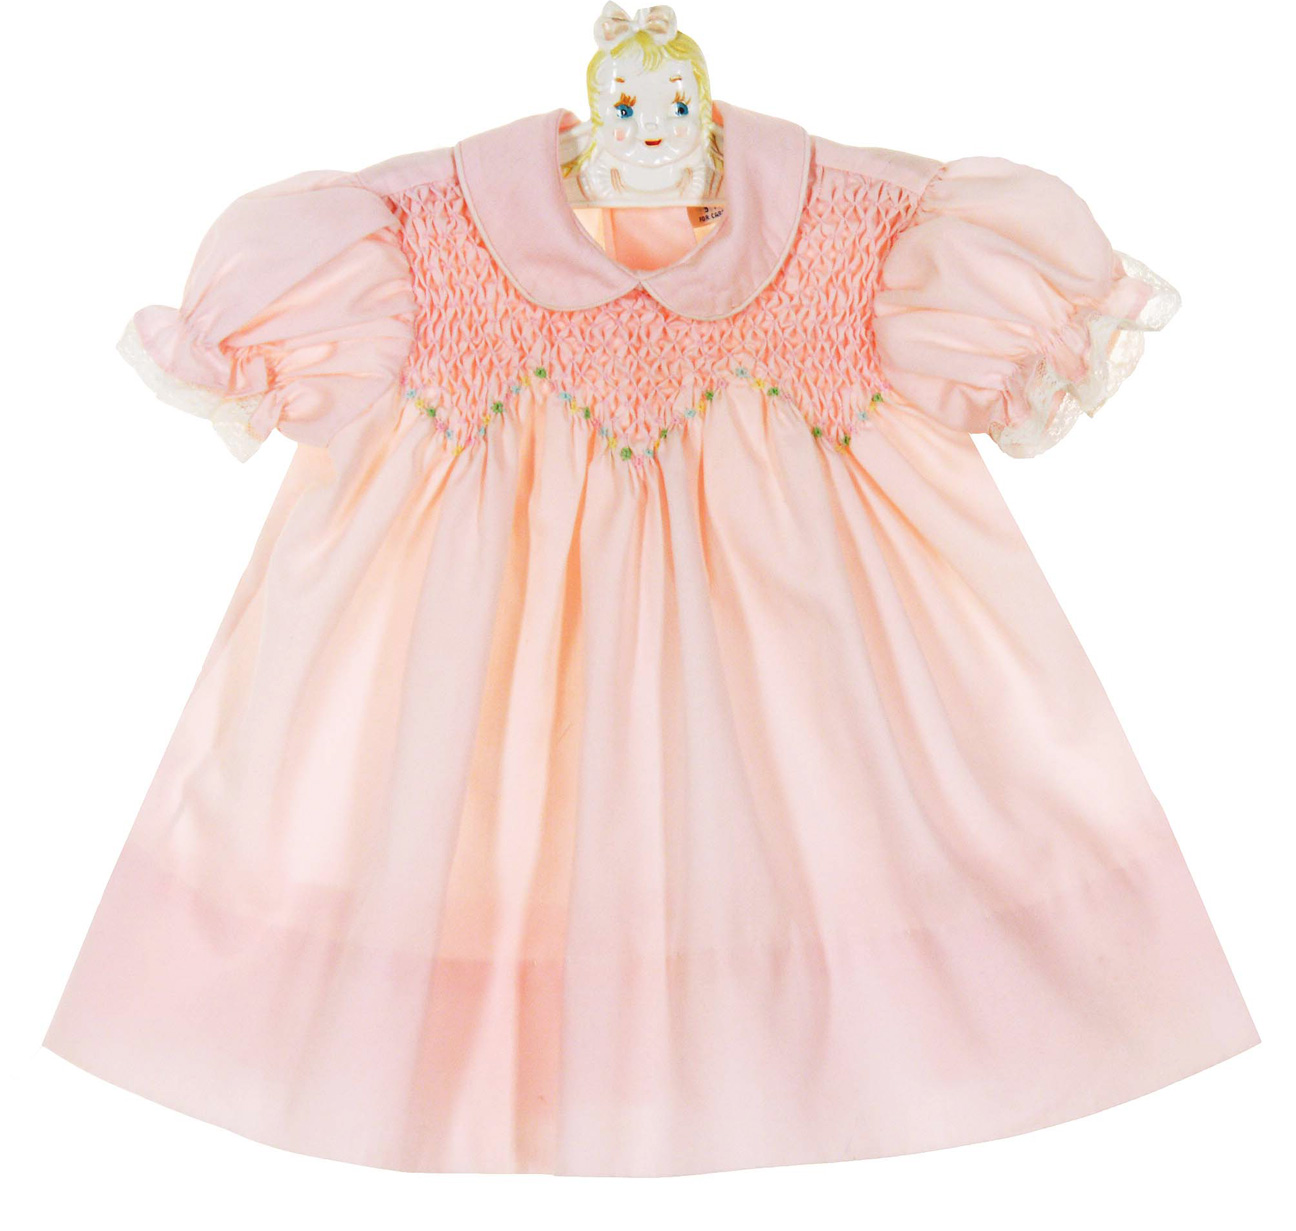 461091c8d Polly Flinders Pink Smocked Dress with Pastel Embroidered Flowers